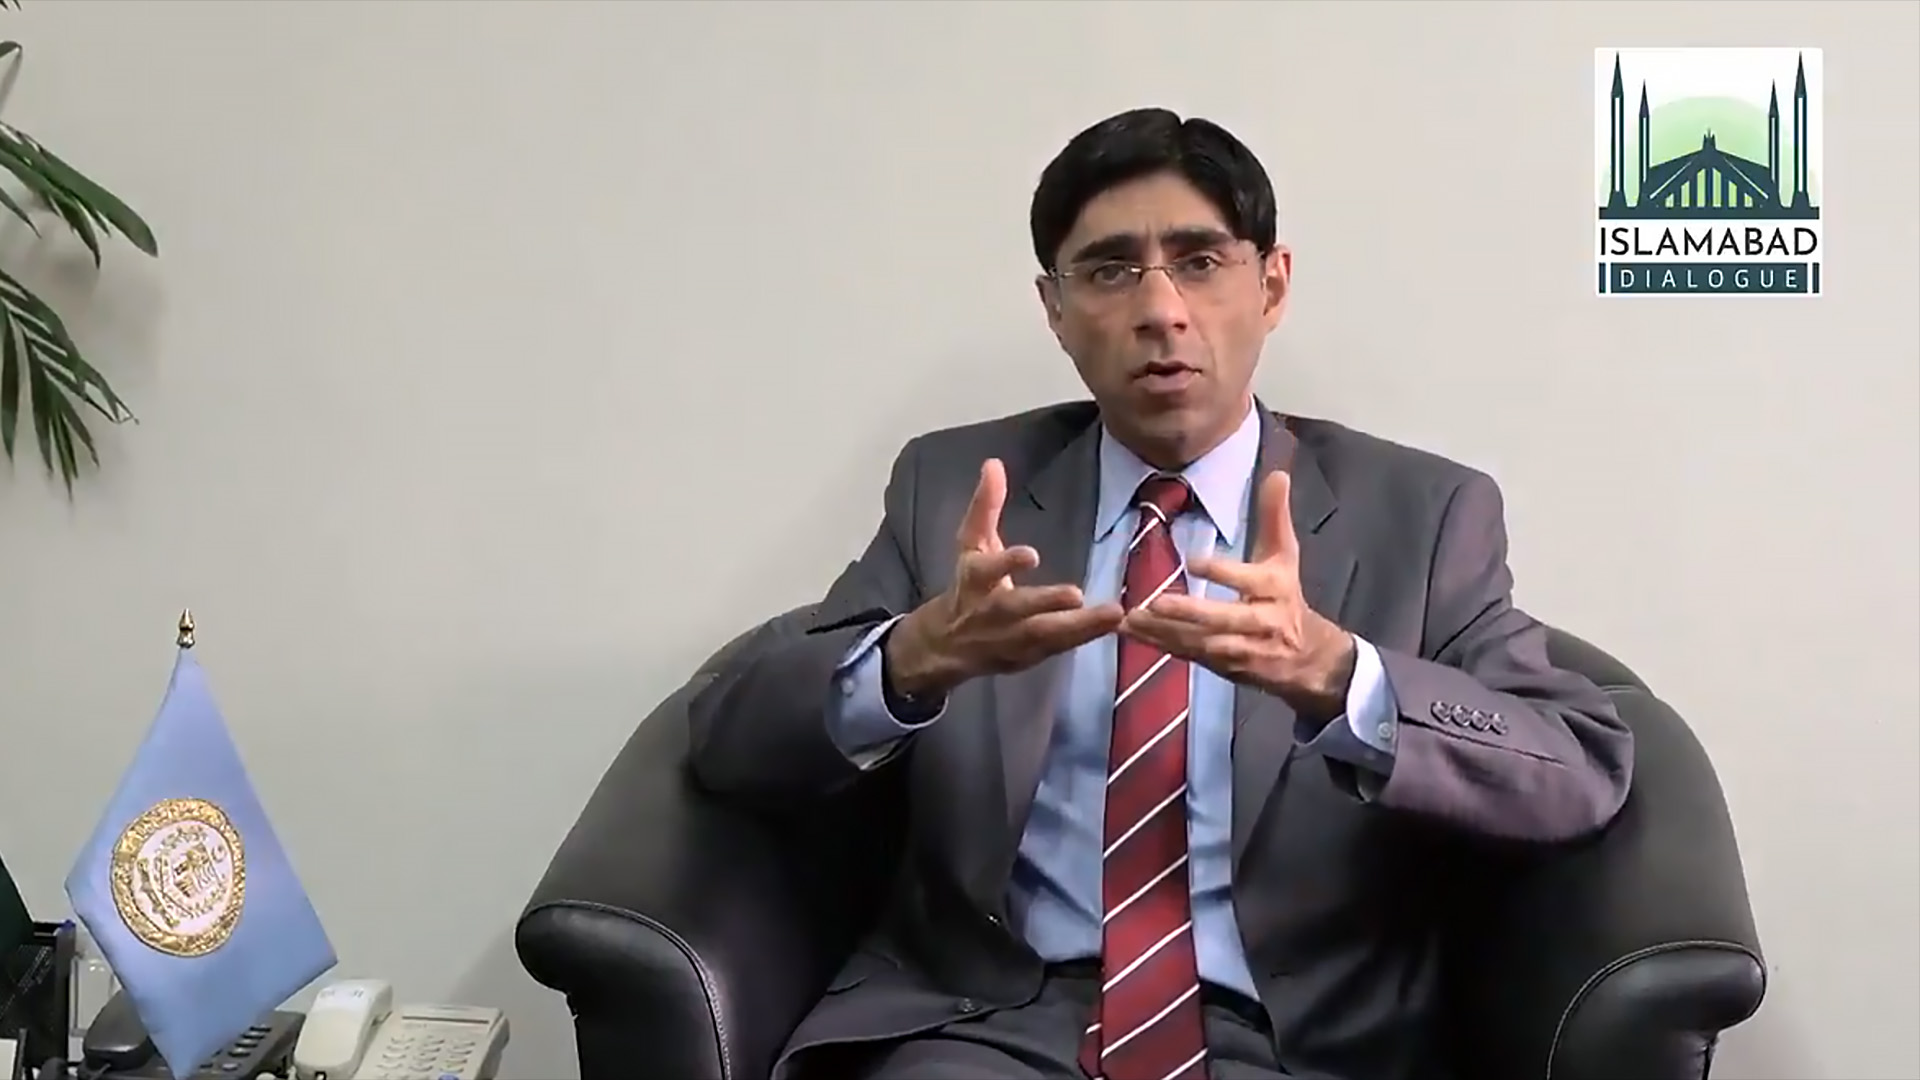 Pakistan Official Says Afghanistan Using Social Media With Anti-Pak Hashtags To Malign Its Image